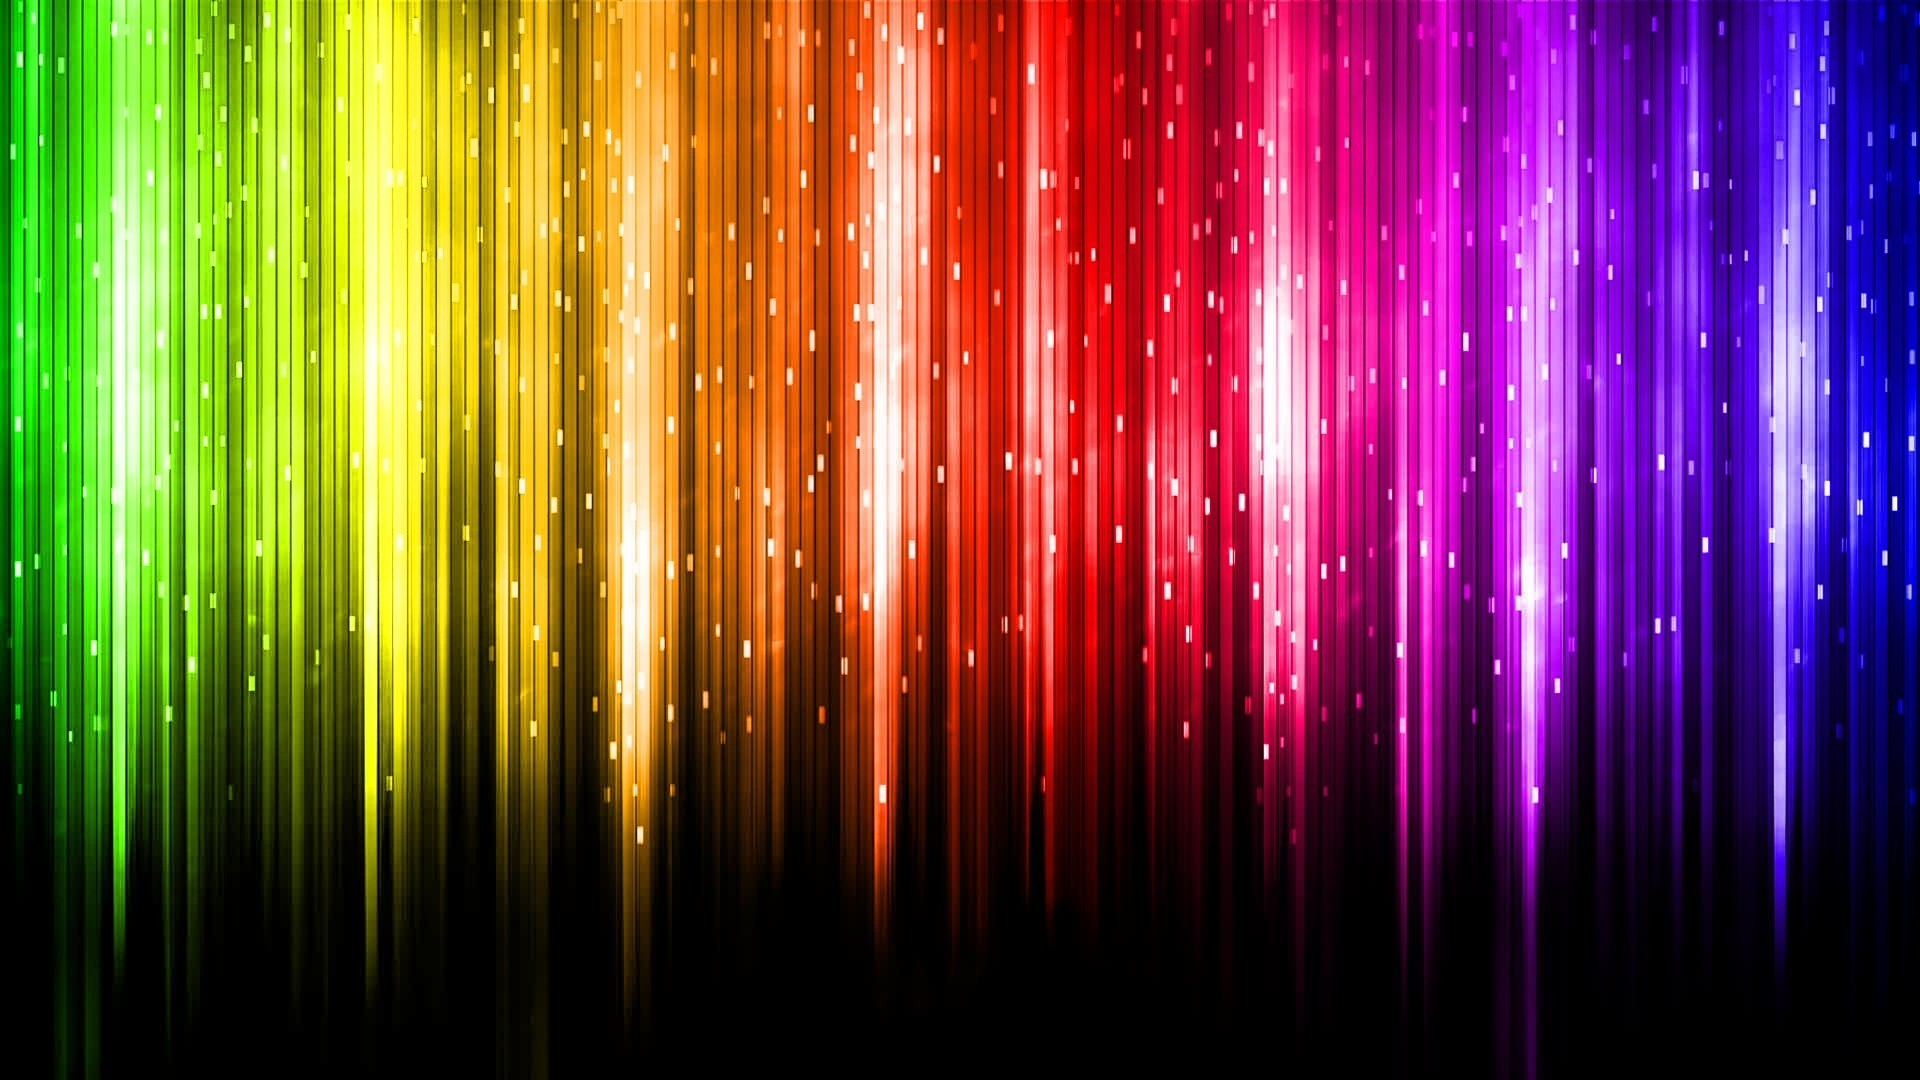 Res: 1920x1080, Kawaii-Charm images Rainbow Background HD wallpaper and background photos